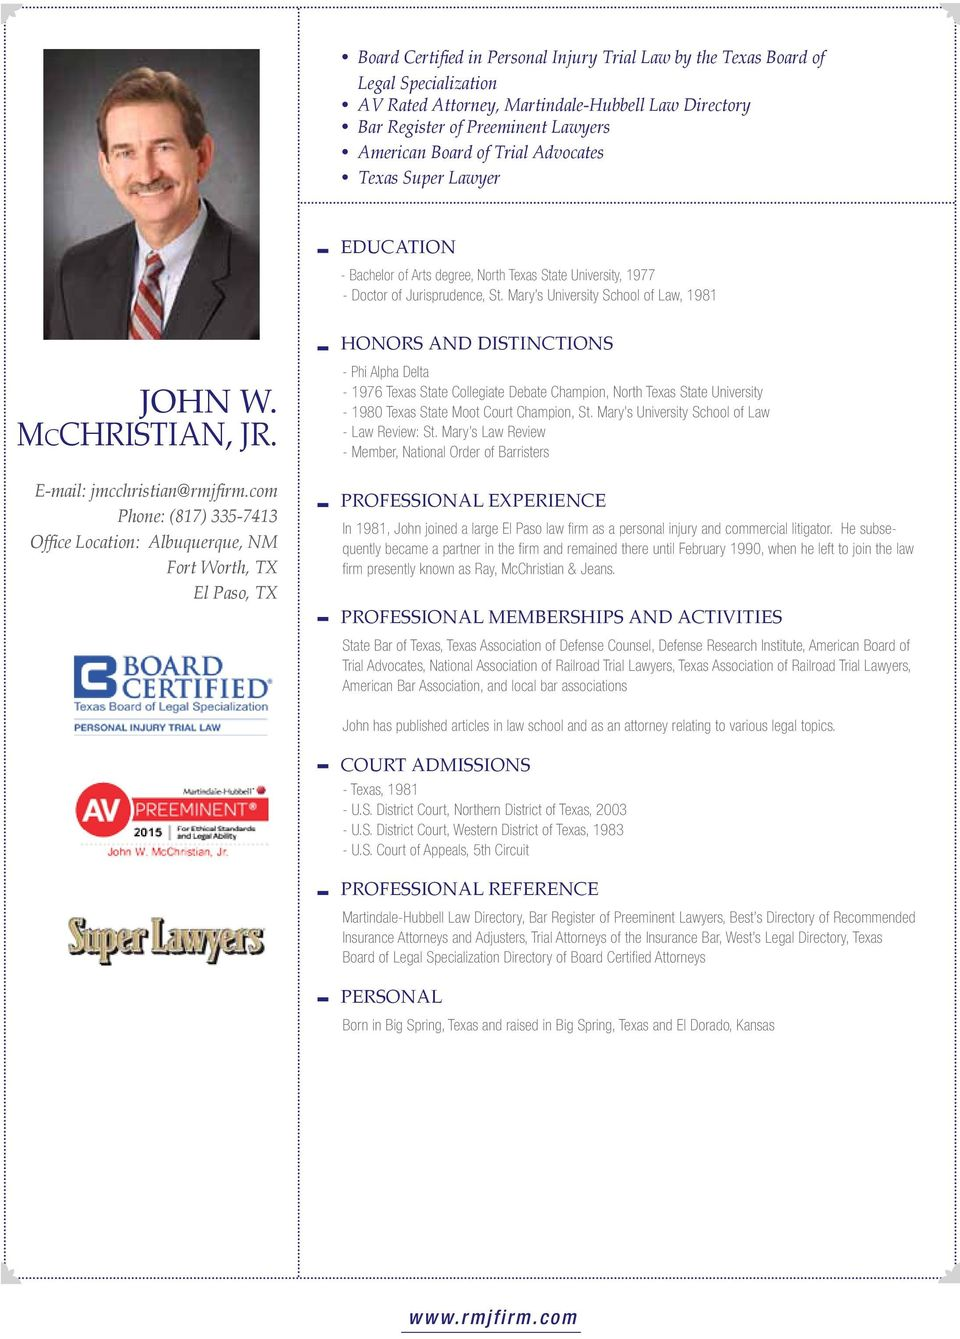 Mary s University School of Law, 1981 Honors and Distinctions John W. McChristian, Jr. E-mail: jmcchristian@rmjfirm.